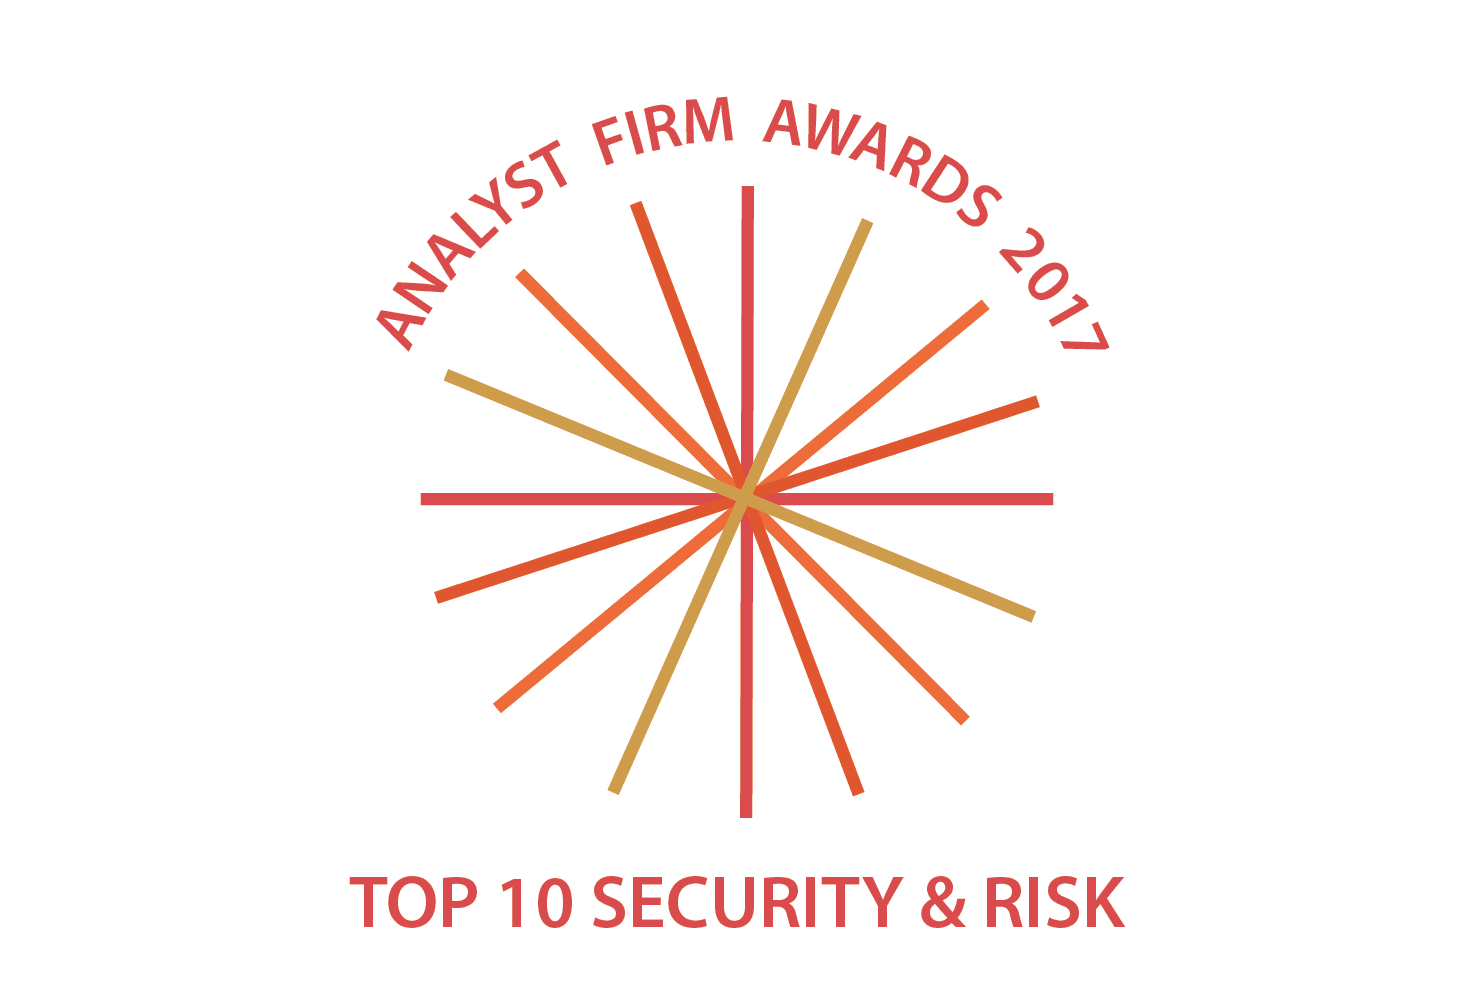 CXP Group & KPMG advance in 2017 Security & Risk Analyst Firm Awards